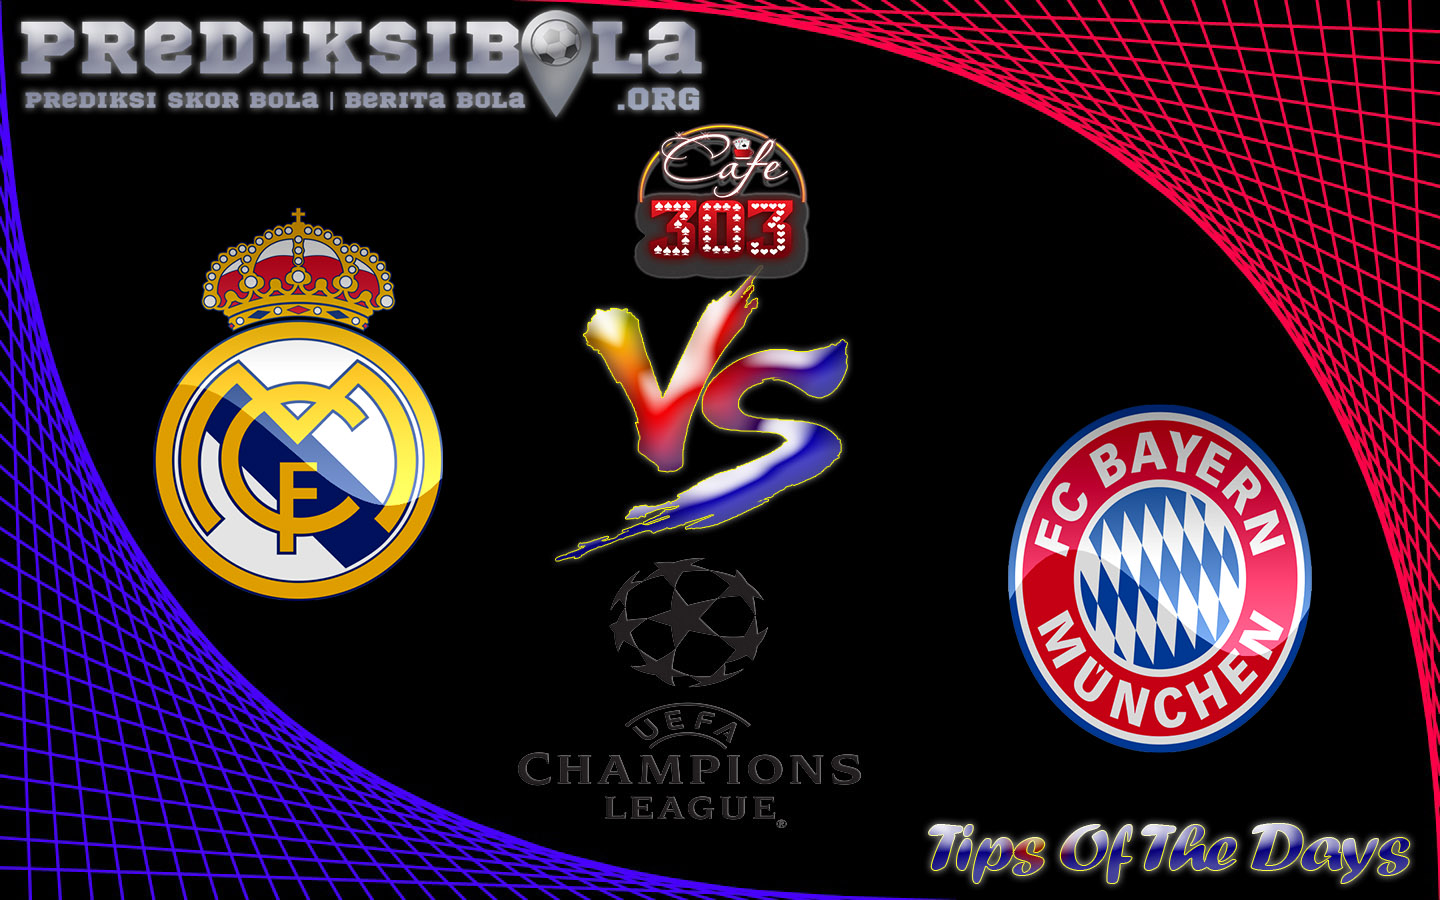 Prediksi Skor Real Madrid Vs Bayer Munchen 19 April 2017